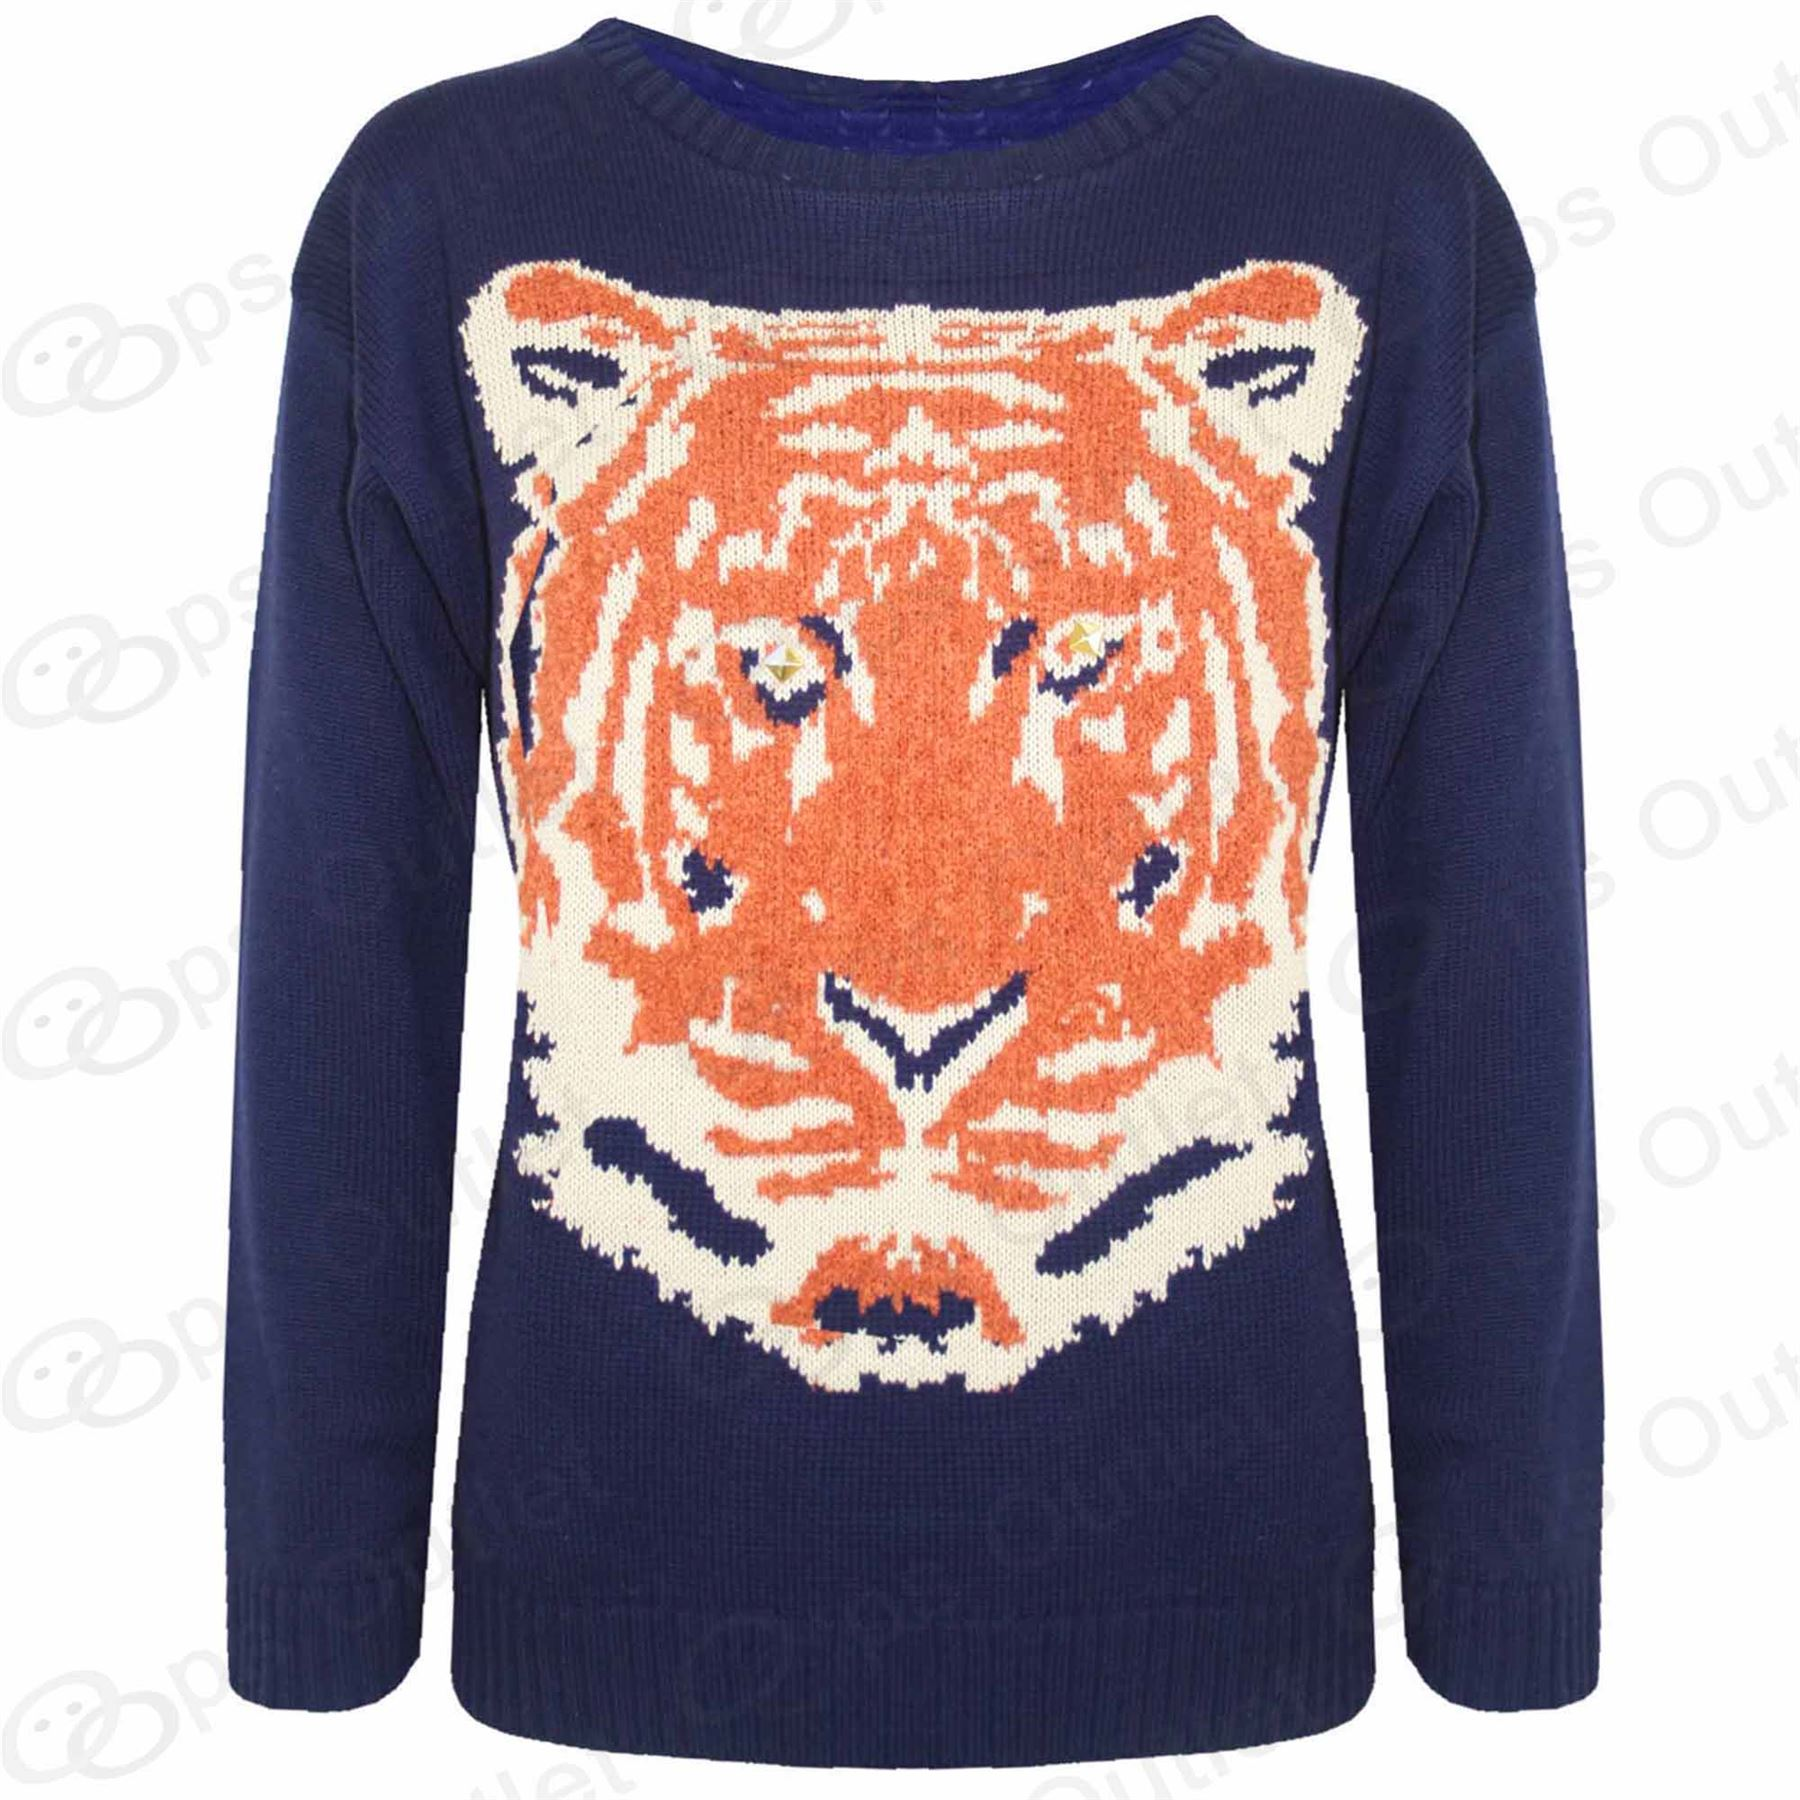 Buy North Face Raglan Simple Dome Crew Sweater Urban Navy with great prices, Free Delivery* & Free Returns at al9mg7p1yos.gq